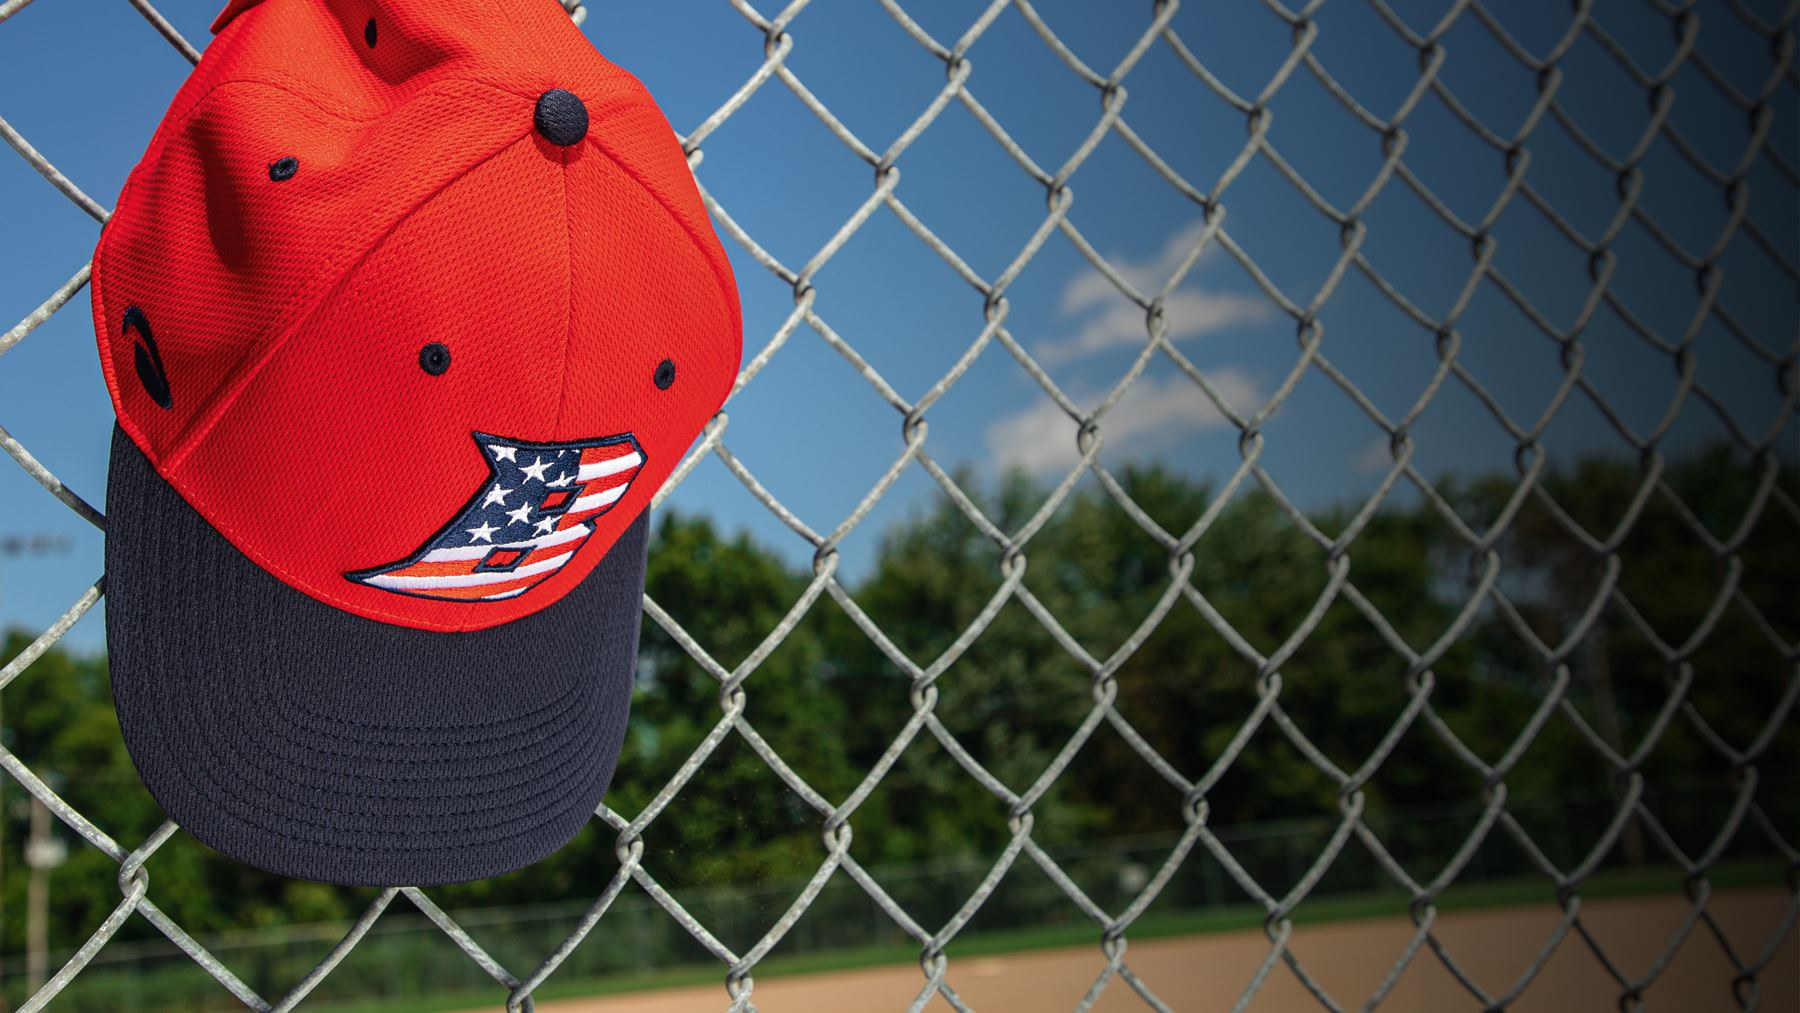 Youth Baseball hat hanging on dugout fence